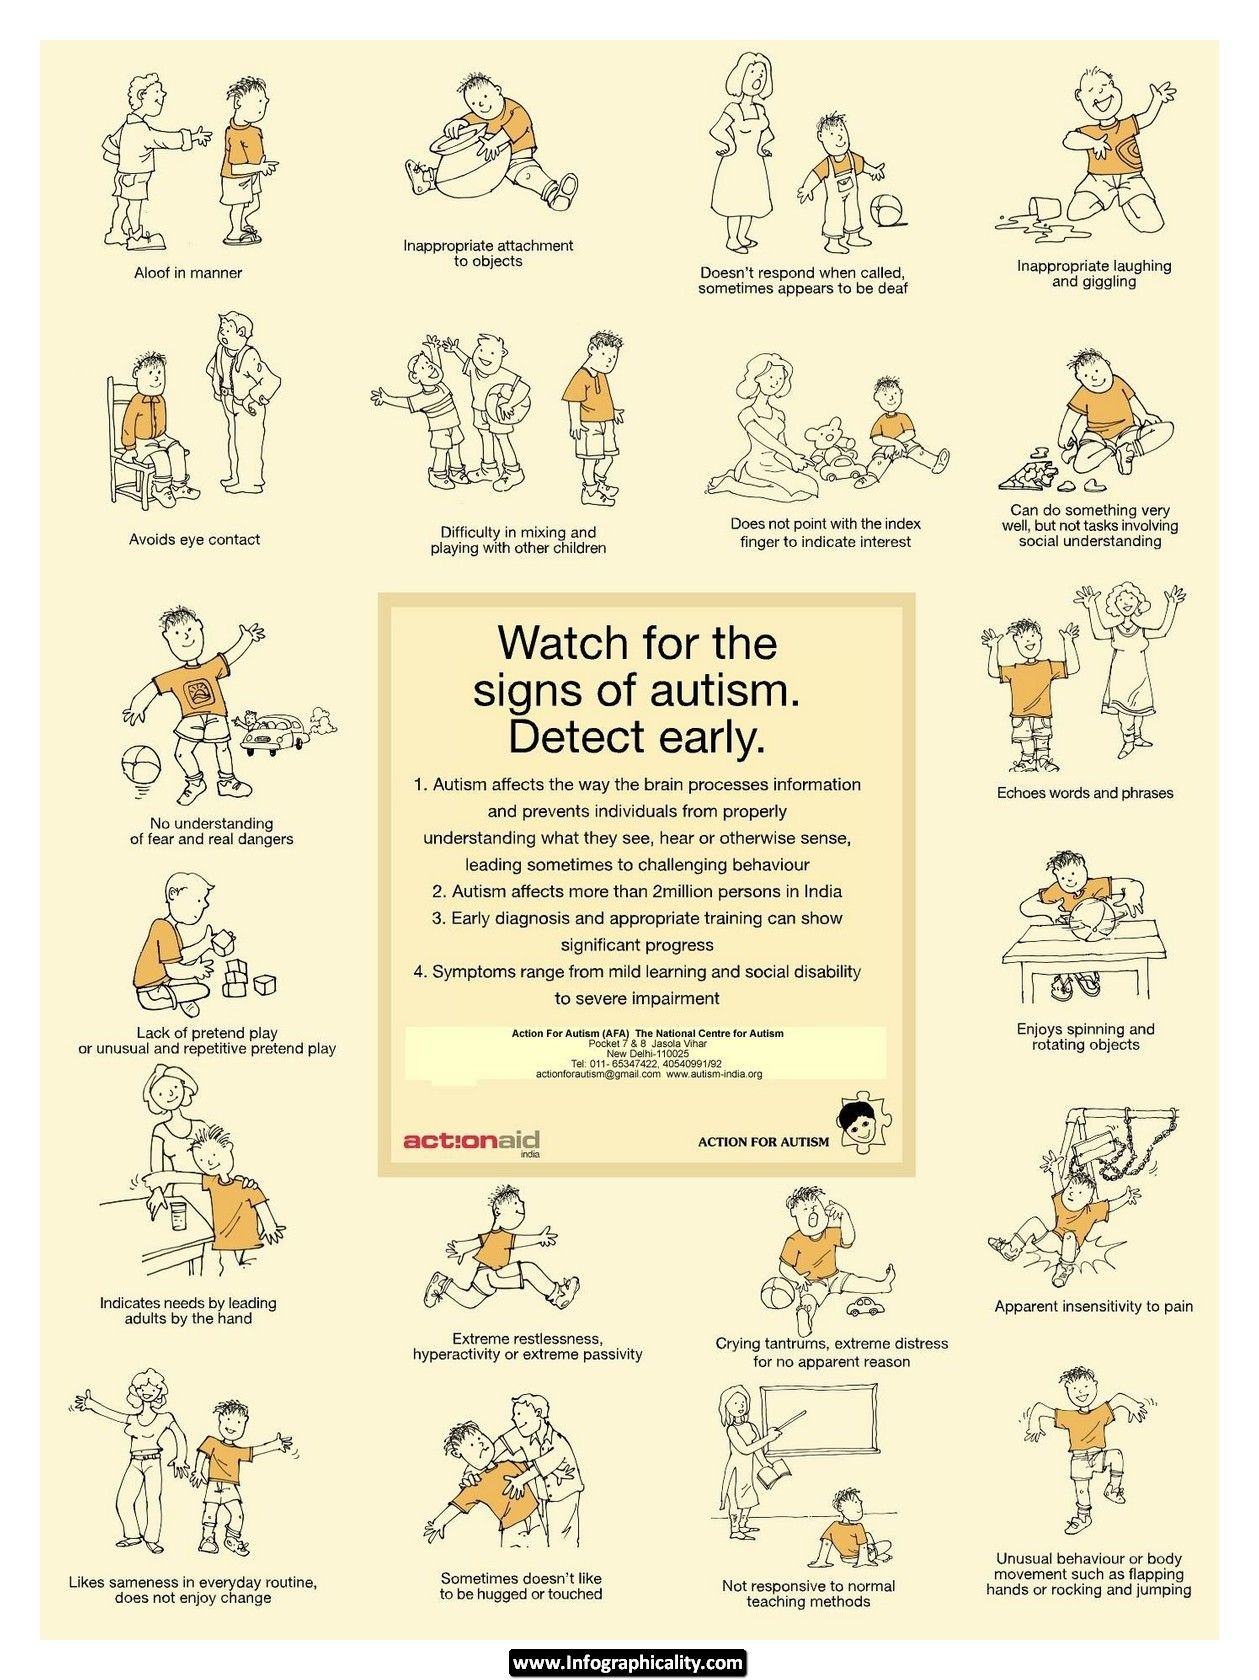 Signs of Autism Infographic detect early Learn more from the